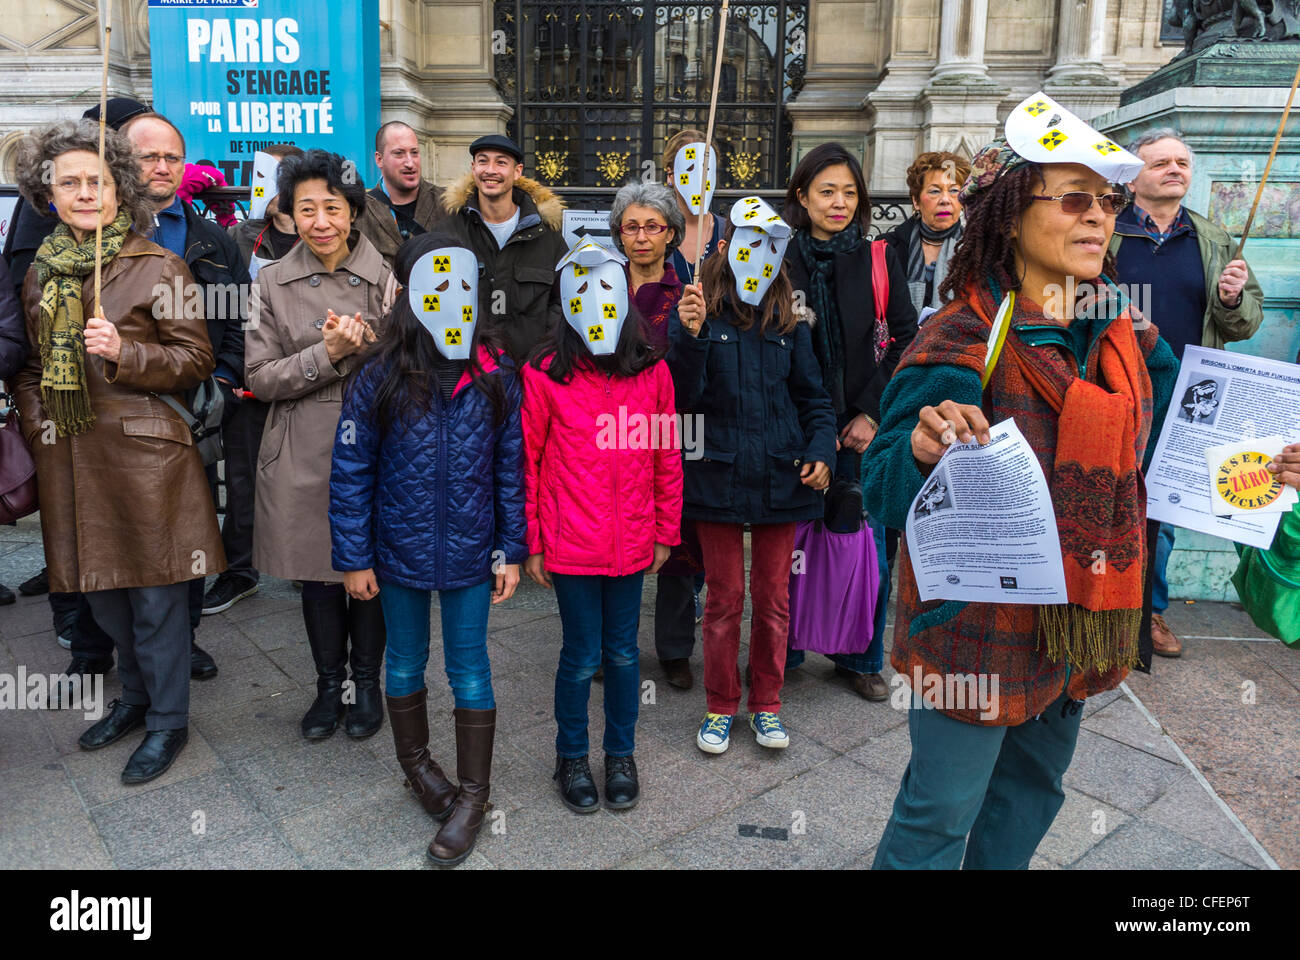 Paris, France, Anti Nuclear Power Activists Demonstrating on Anniversary of Fukushima Disaster,  Japanese Family, - Stock Image